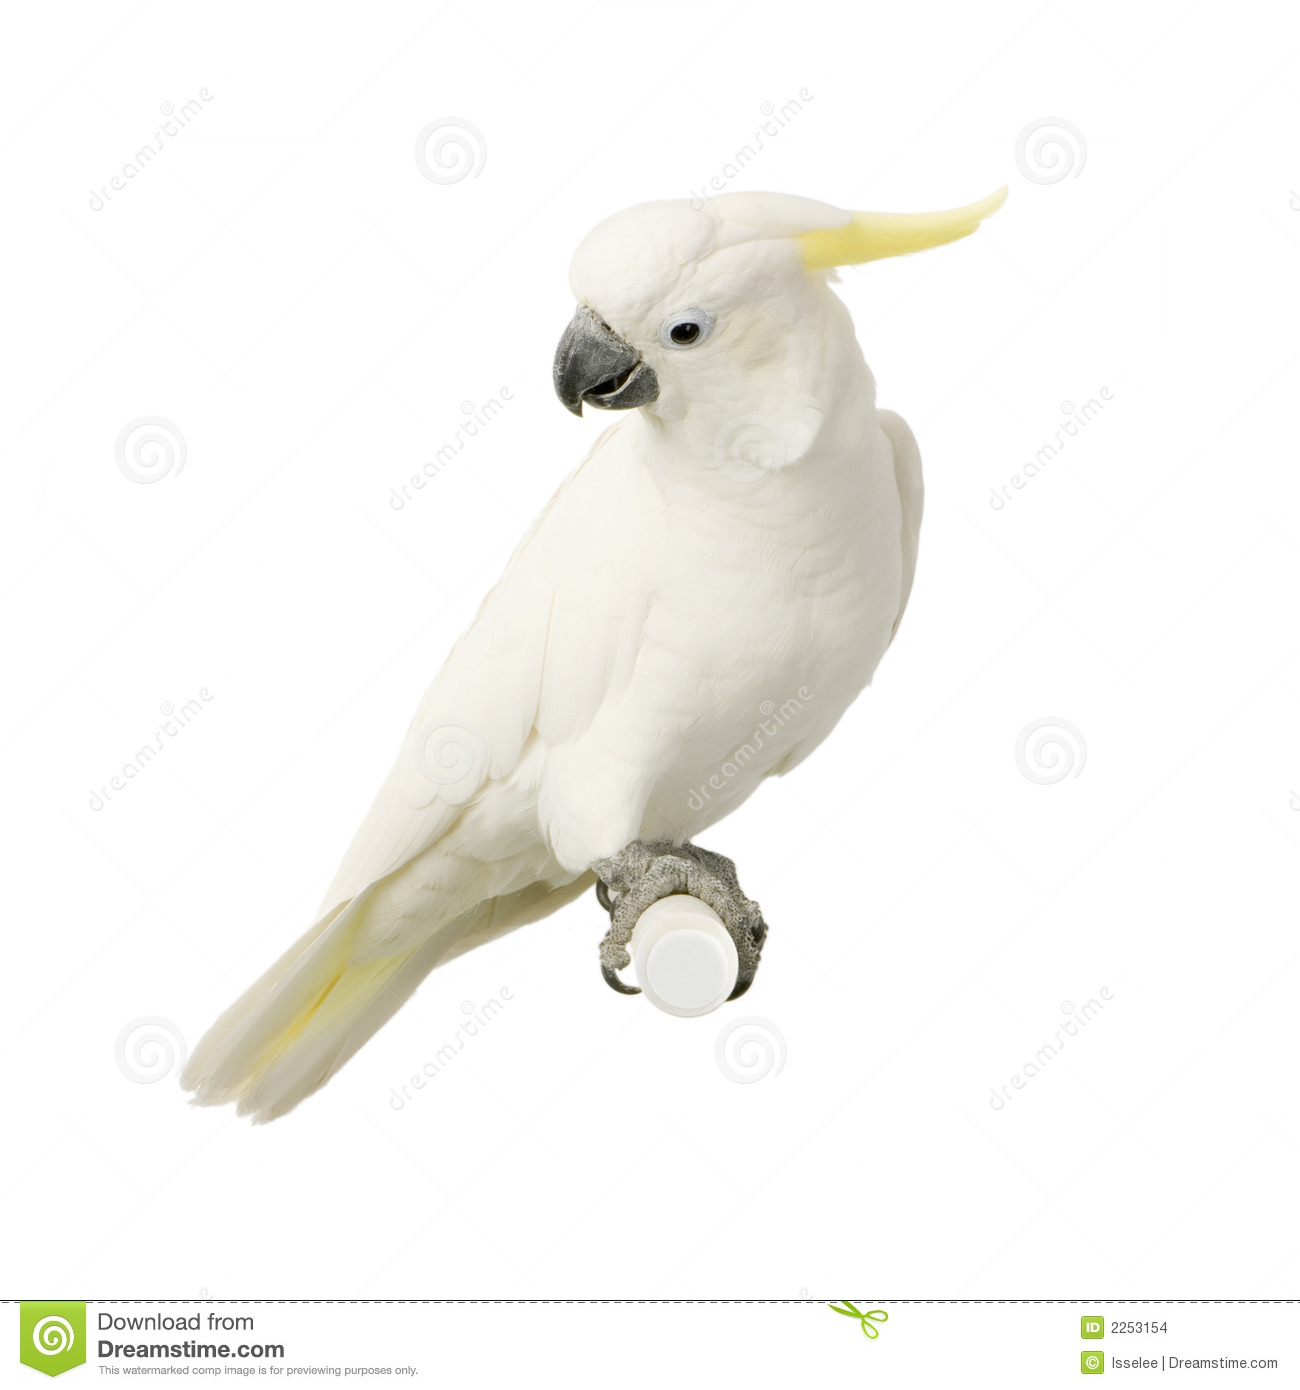 Sulphur-crested Cockatoo clipart #8, Download drawings